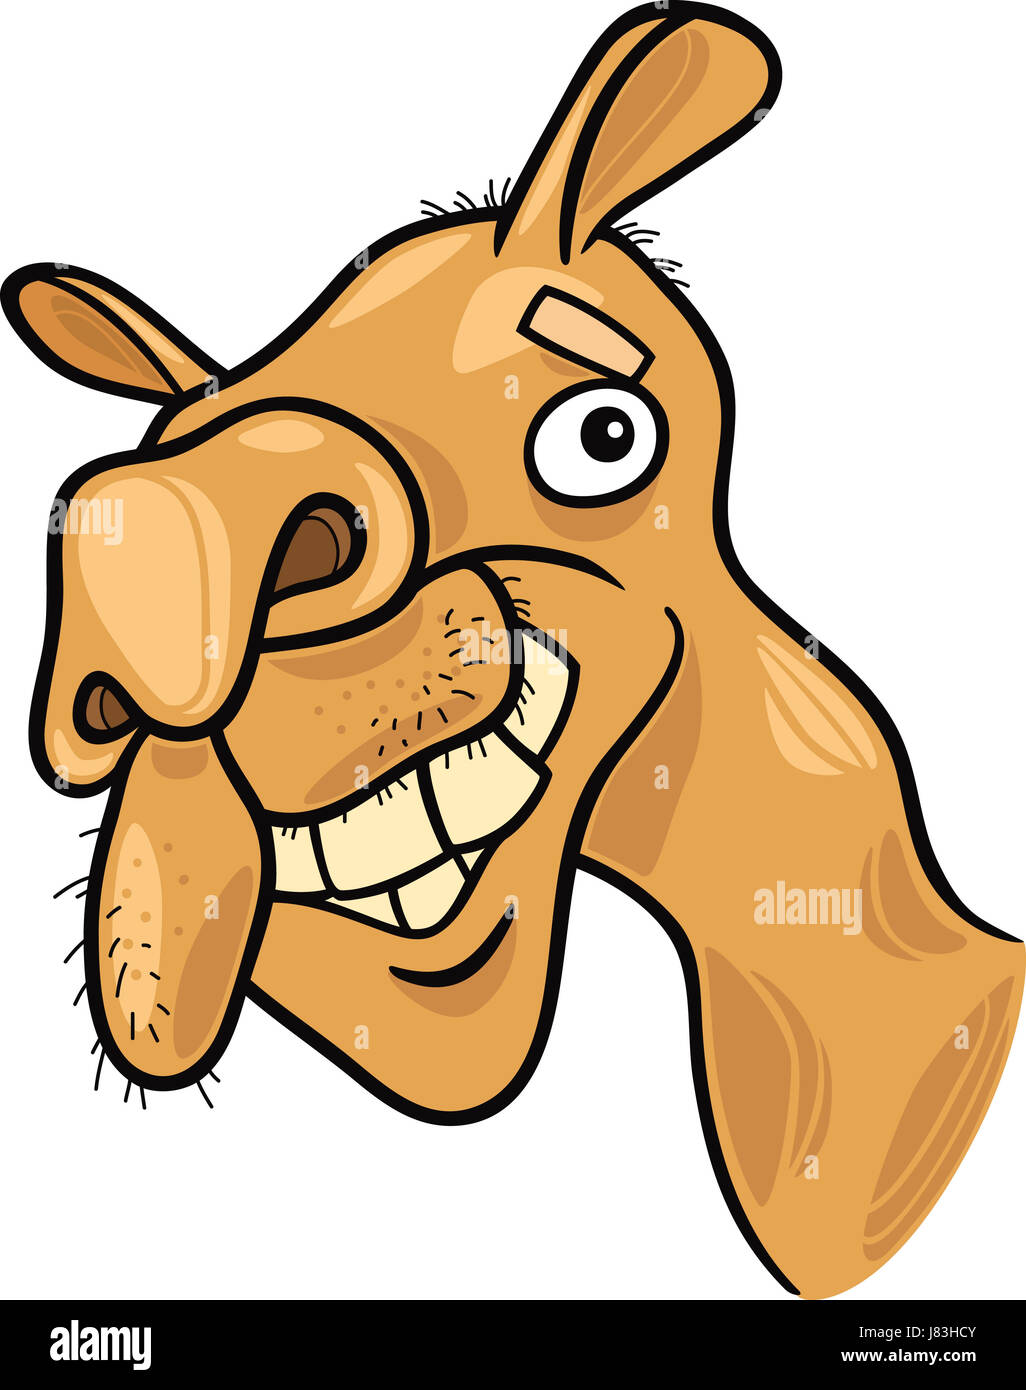 animal asia africa camel illustration funny cartoon laugh laughs